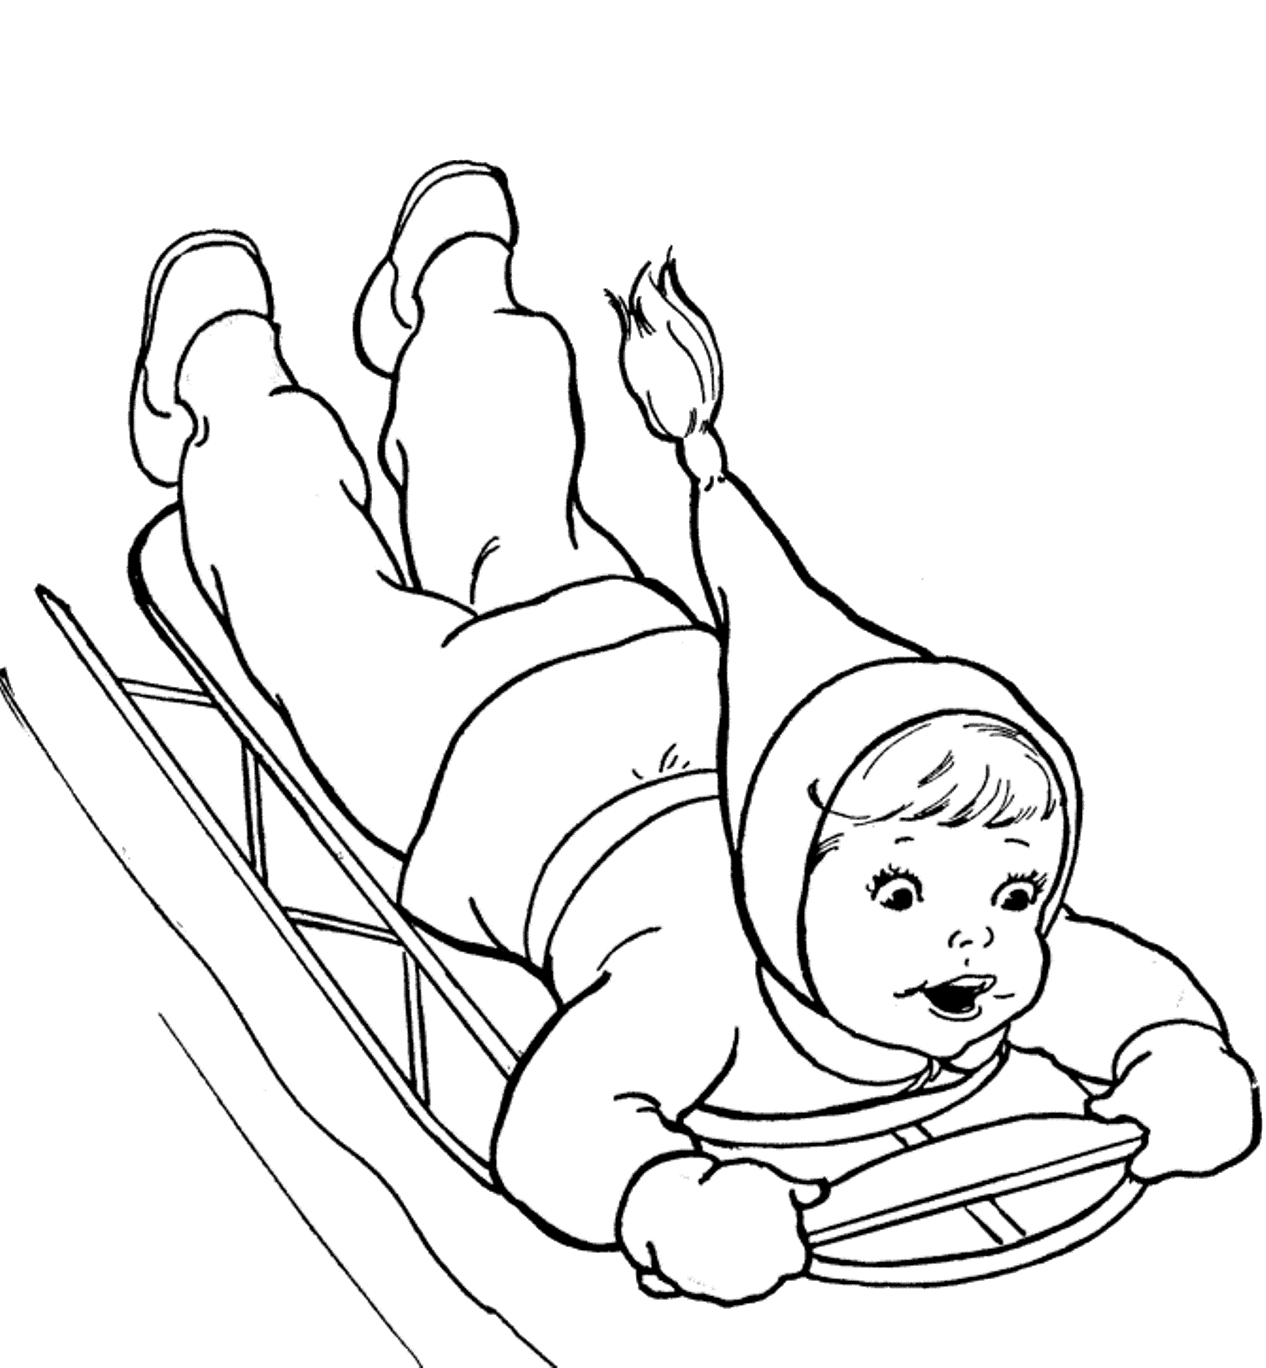 winter sports coloring pages sports photograph coloring pages kids winter pages coloring sports